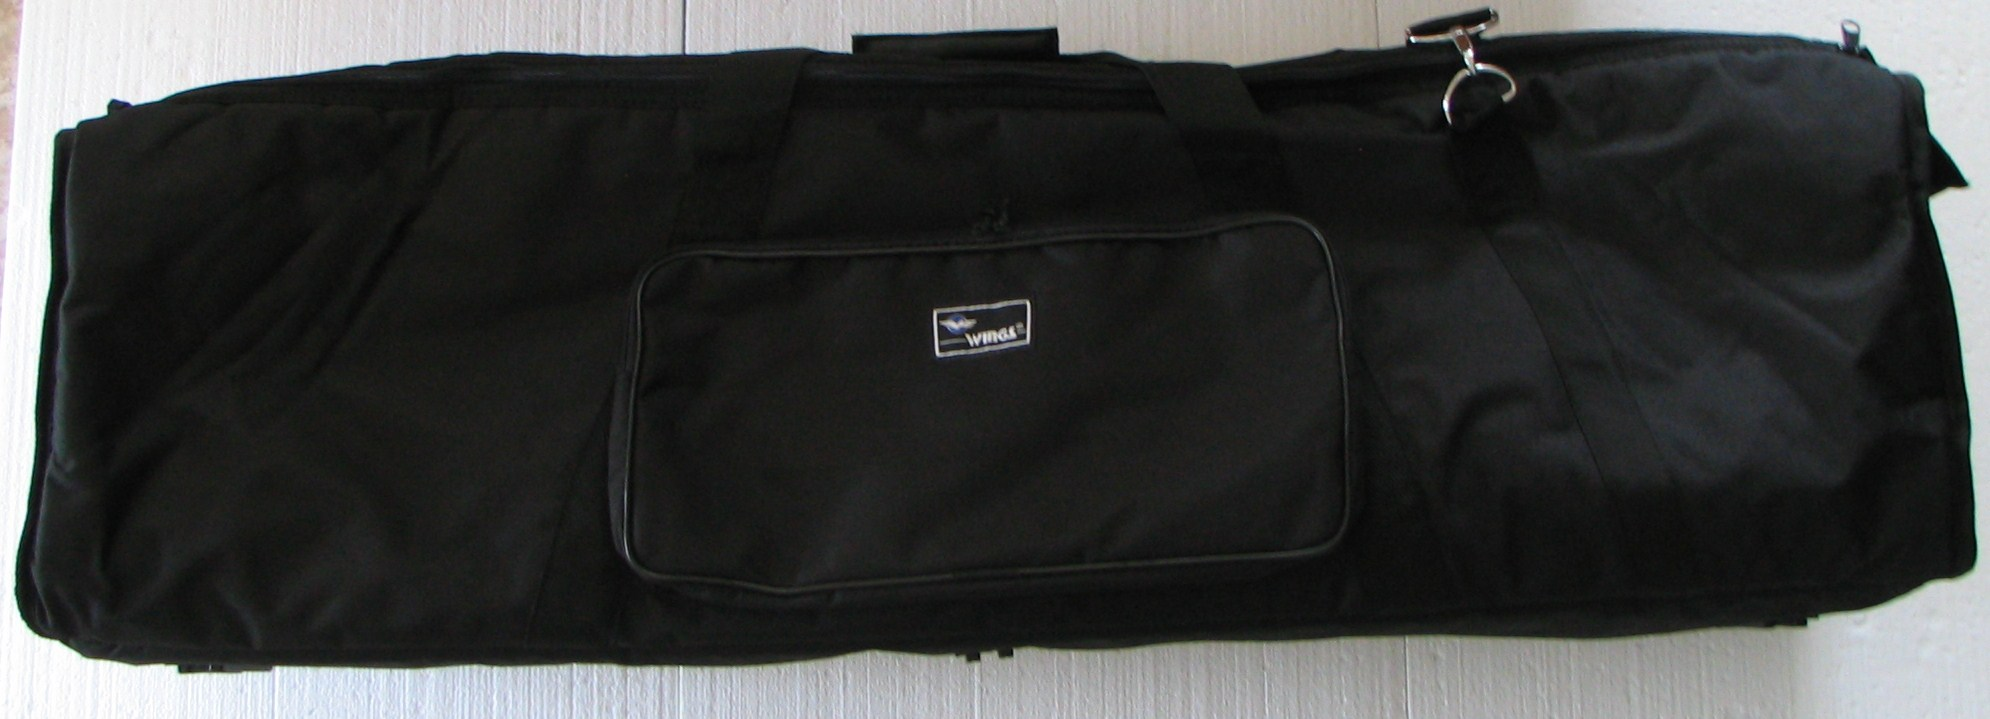 Wings Gig bag na hardware (bicí) HB 4420